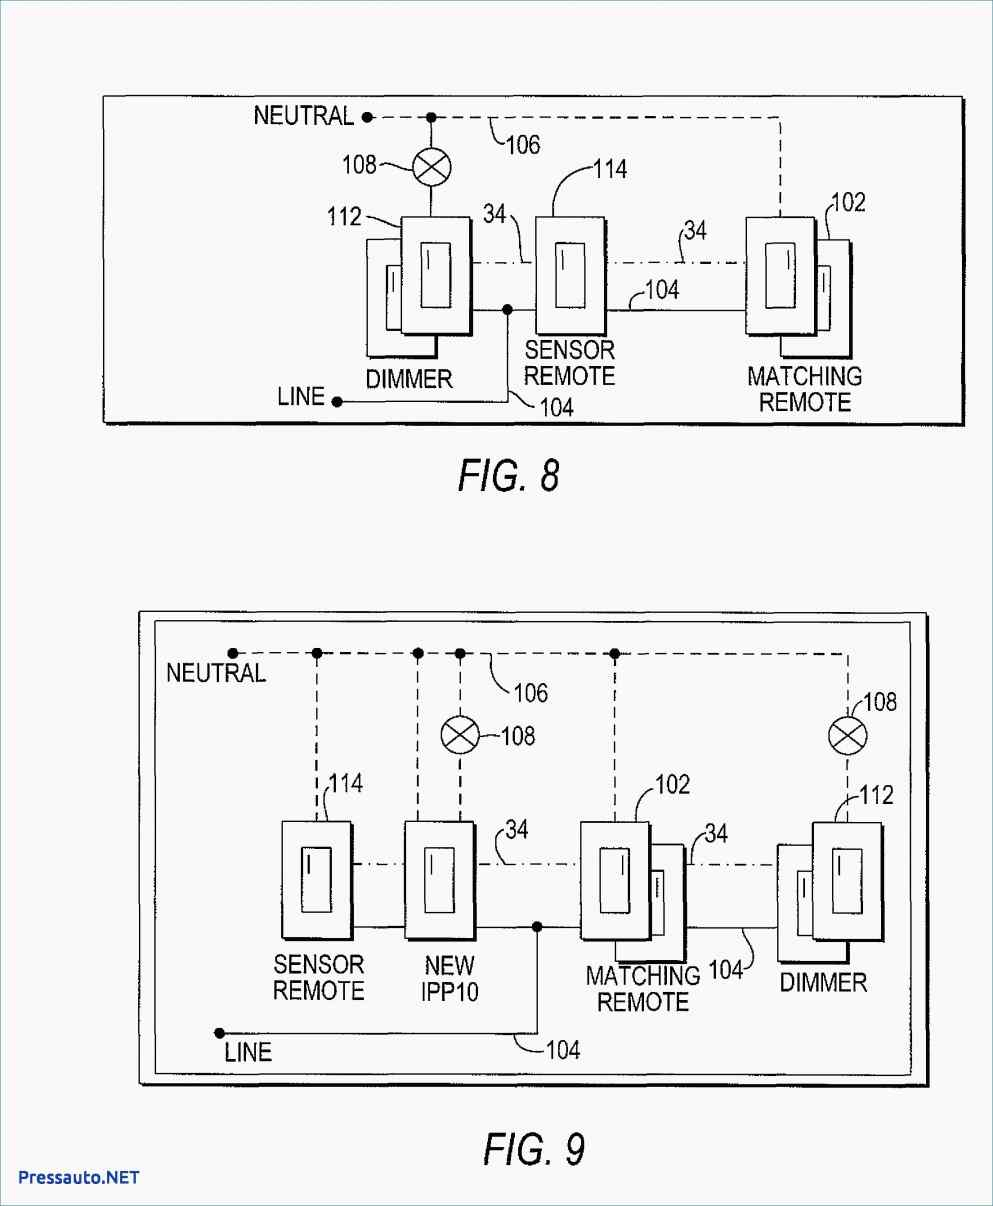 medium resolution of lutron way dimmer switch wiring diagram wiring diagram way switch beautiful lutron diva way dimmer wiring